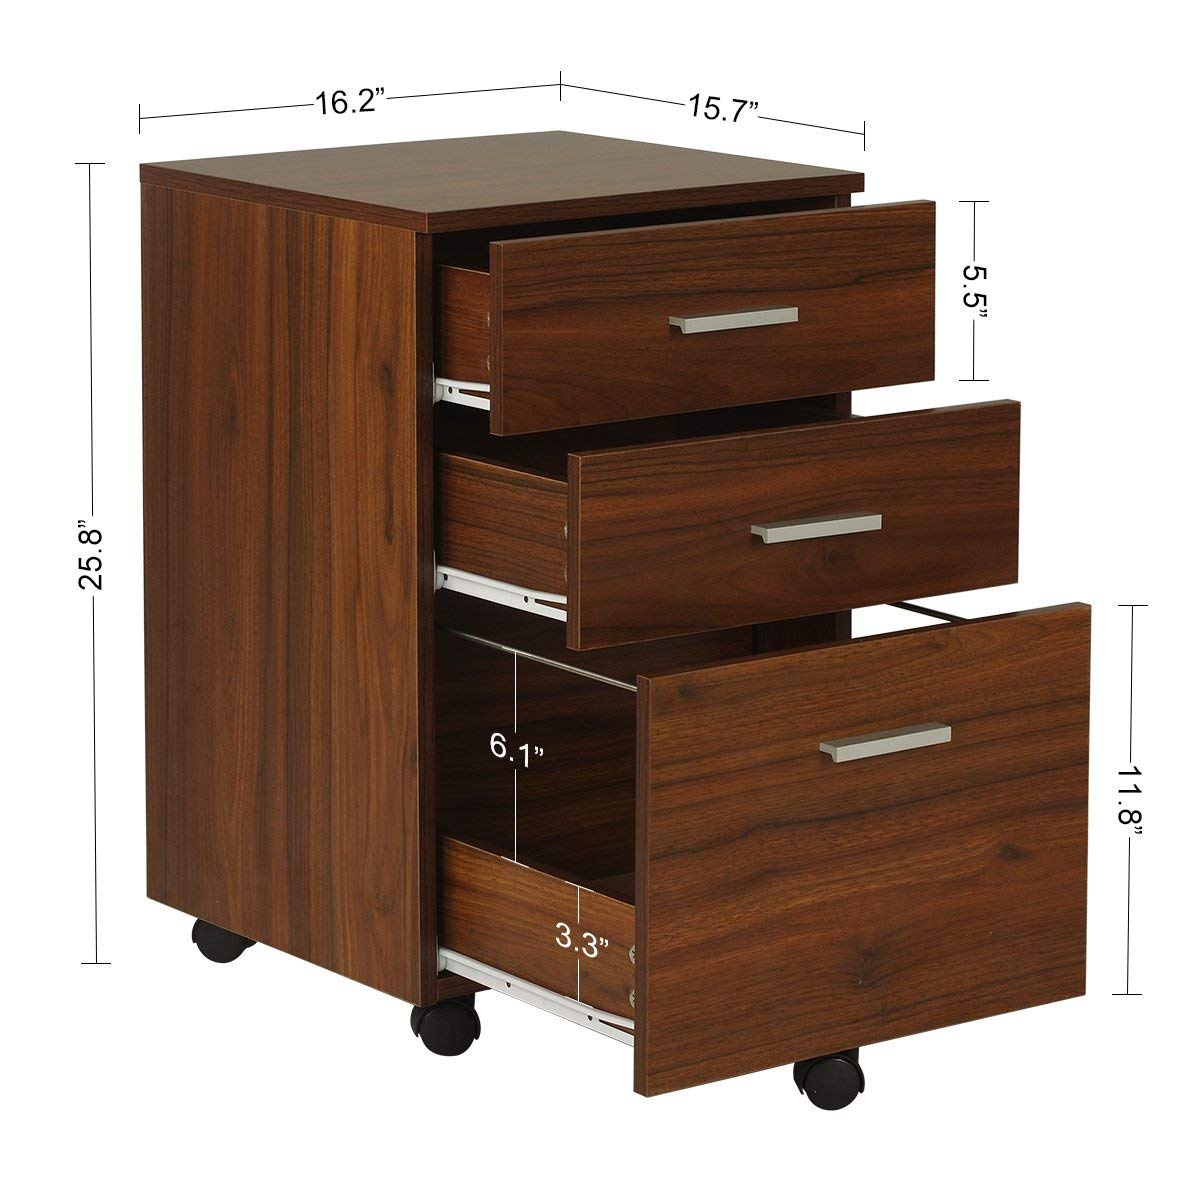 Amazon Com Devaise 3 Drawer Wood Mobile Filing Cabinet Small File Cabinets For Home Office Letter Size A4 Walnut Office Products